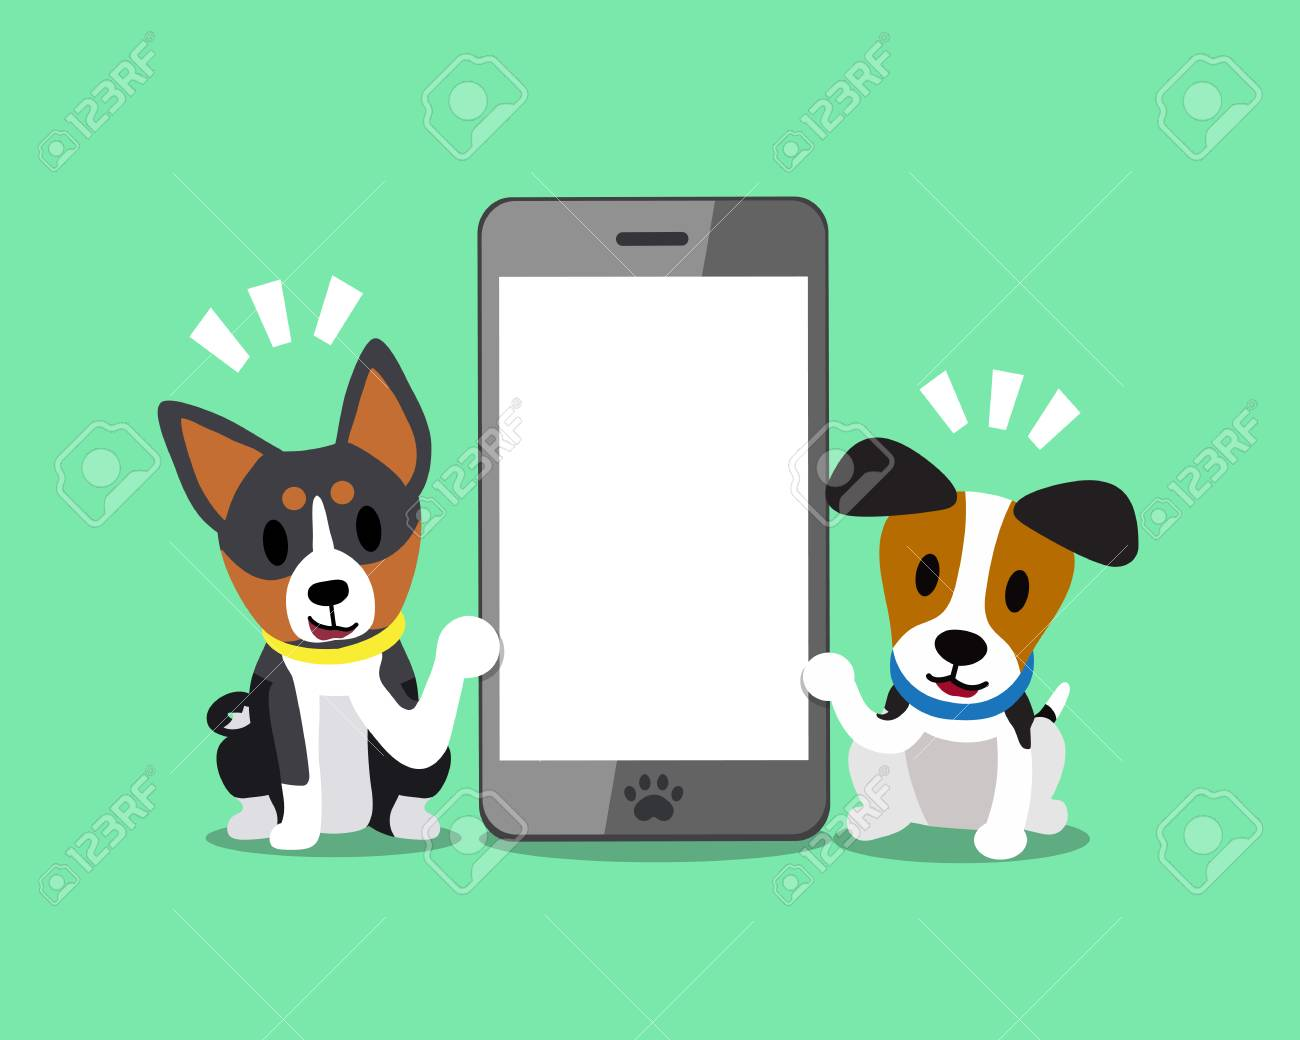 Cartoon character jack russell terrier dog and basenji dog with